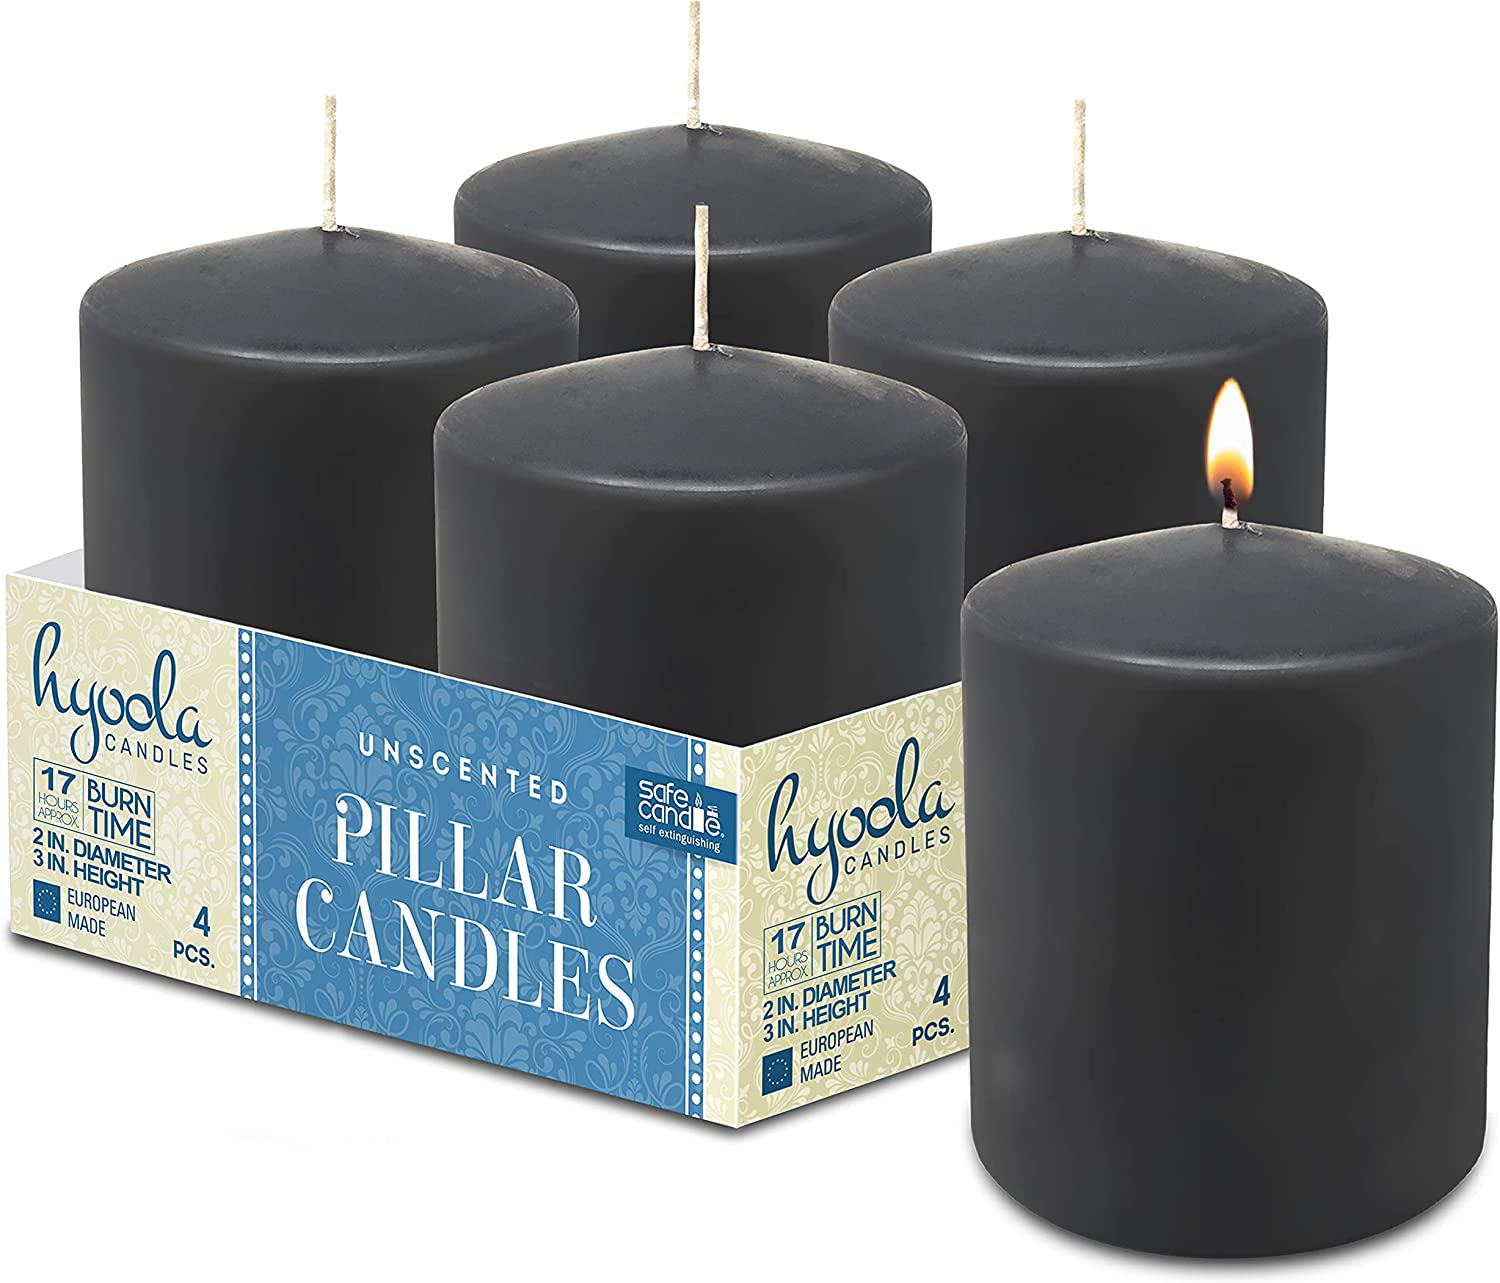 Hyoola San Jose Mall Dark Grey Pillar Candles 2x3 Inch Shipping included Pack Unscented 4 - Pill